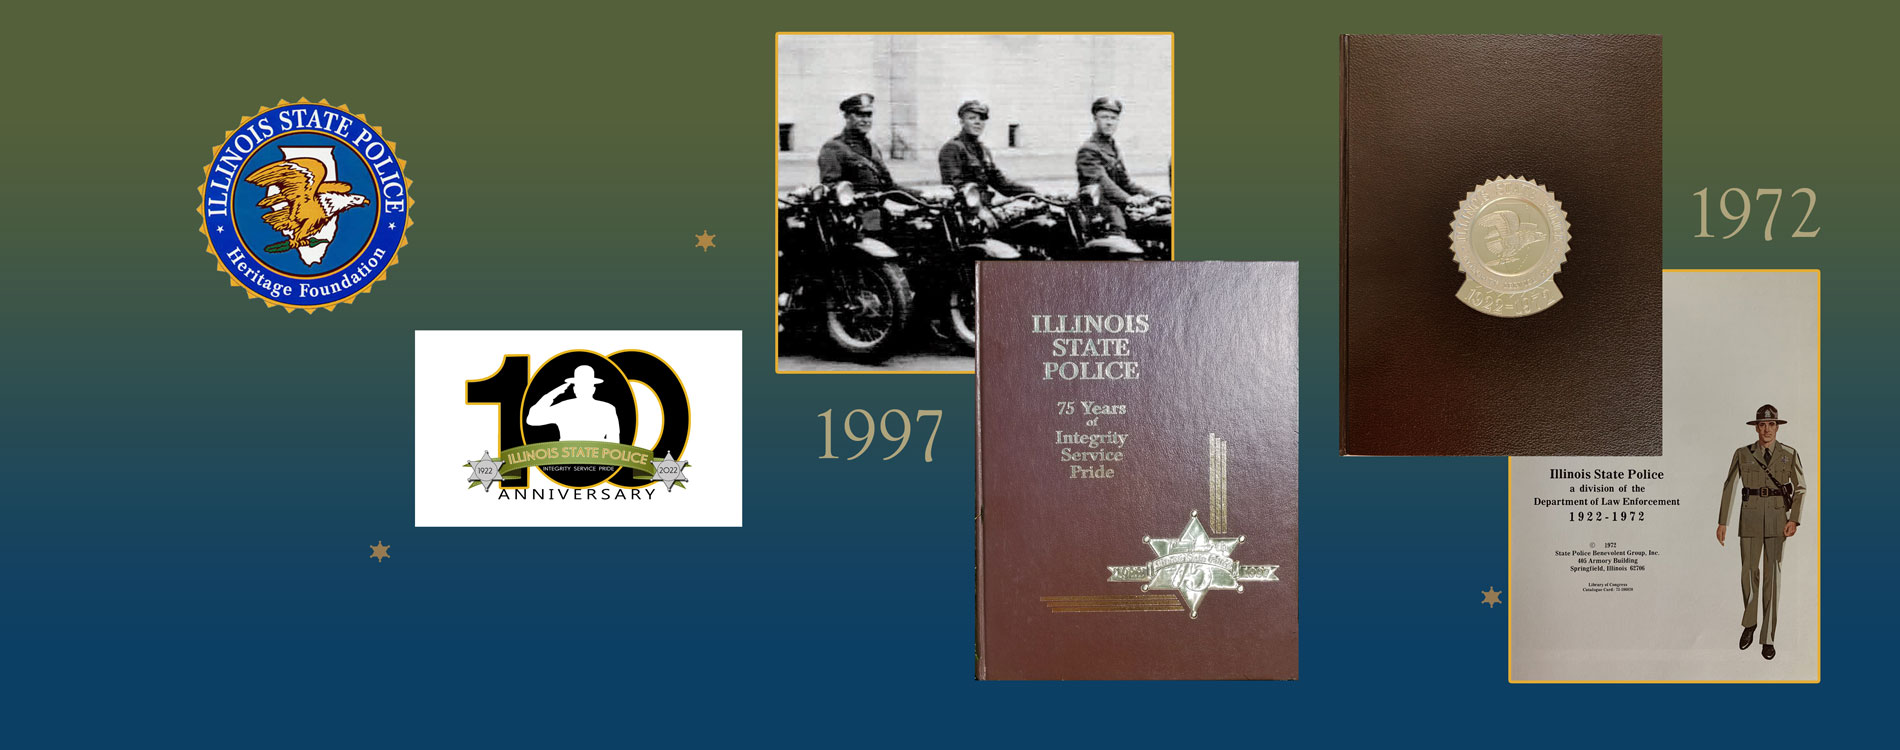 Illinois State Police Agency History, including yearbook content since 1922.